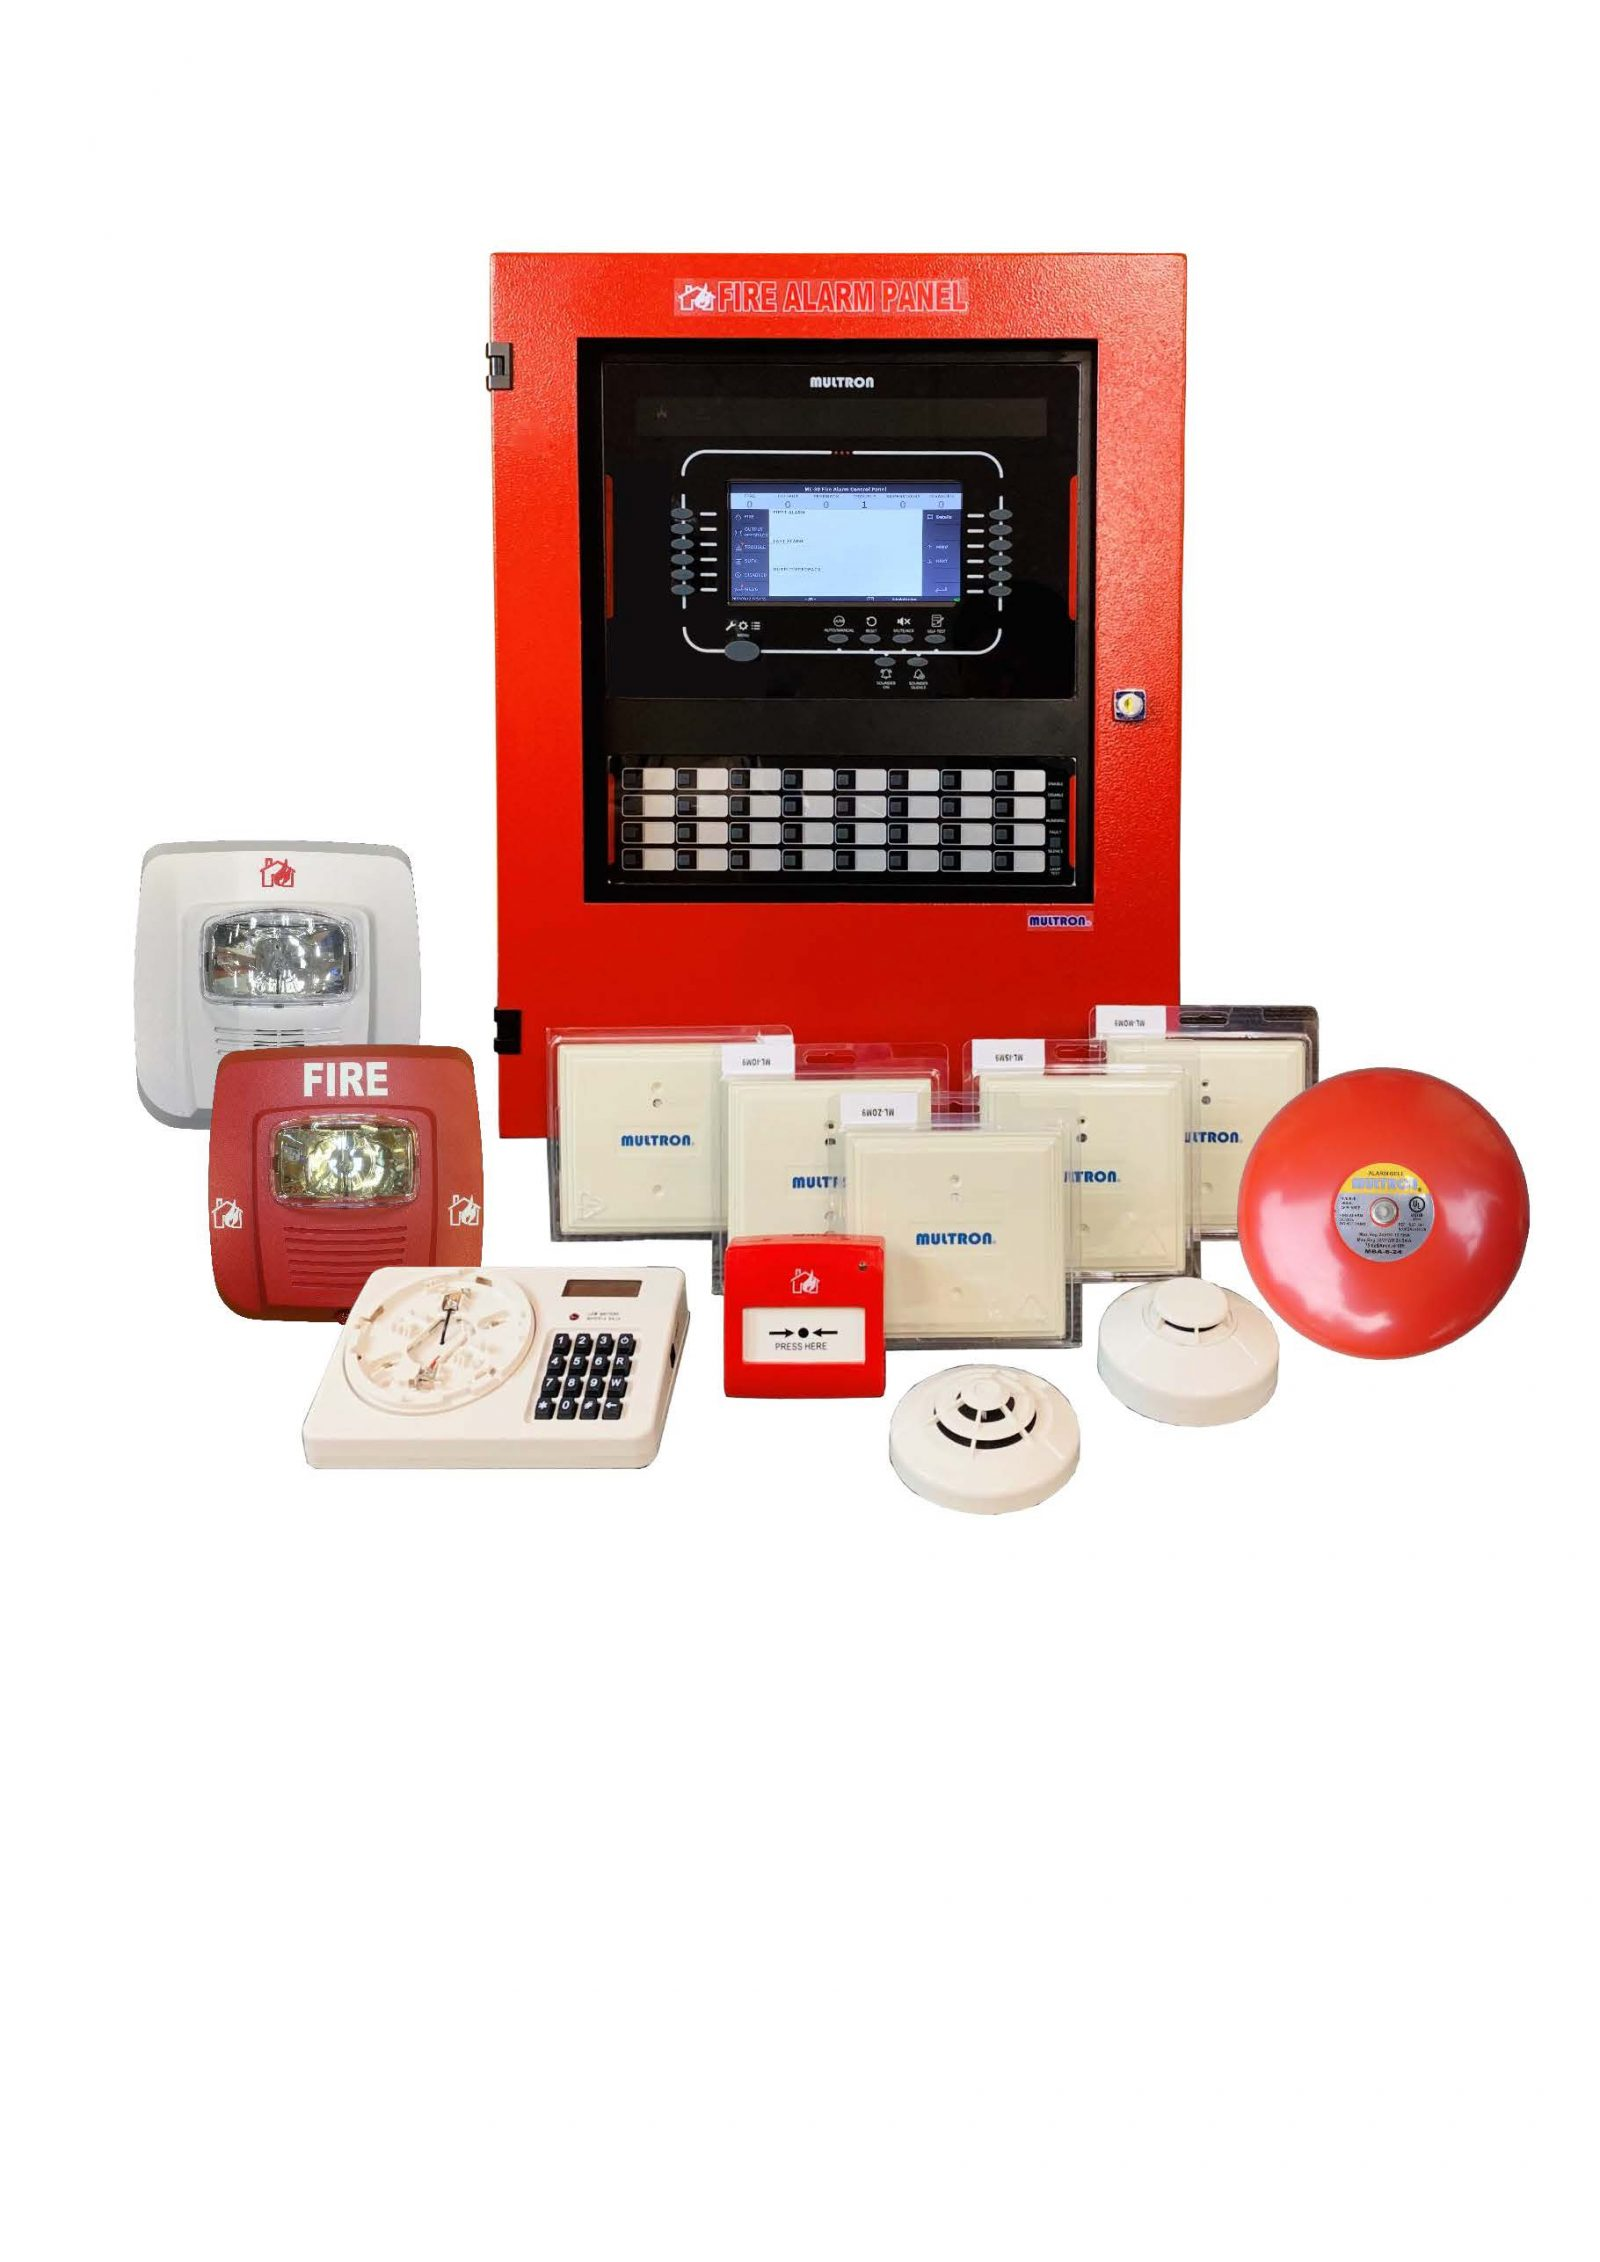 Addressable Fire Alarm General catalogue